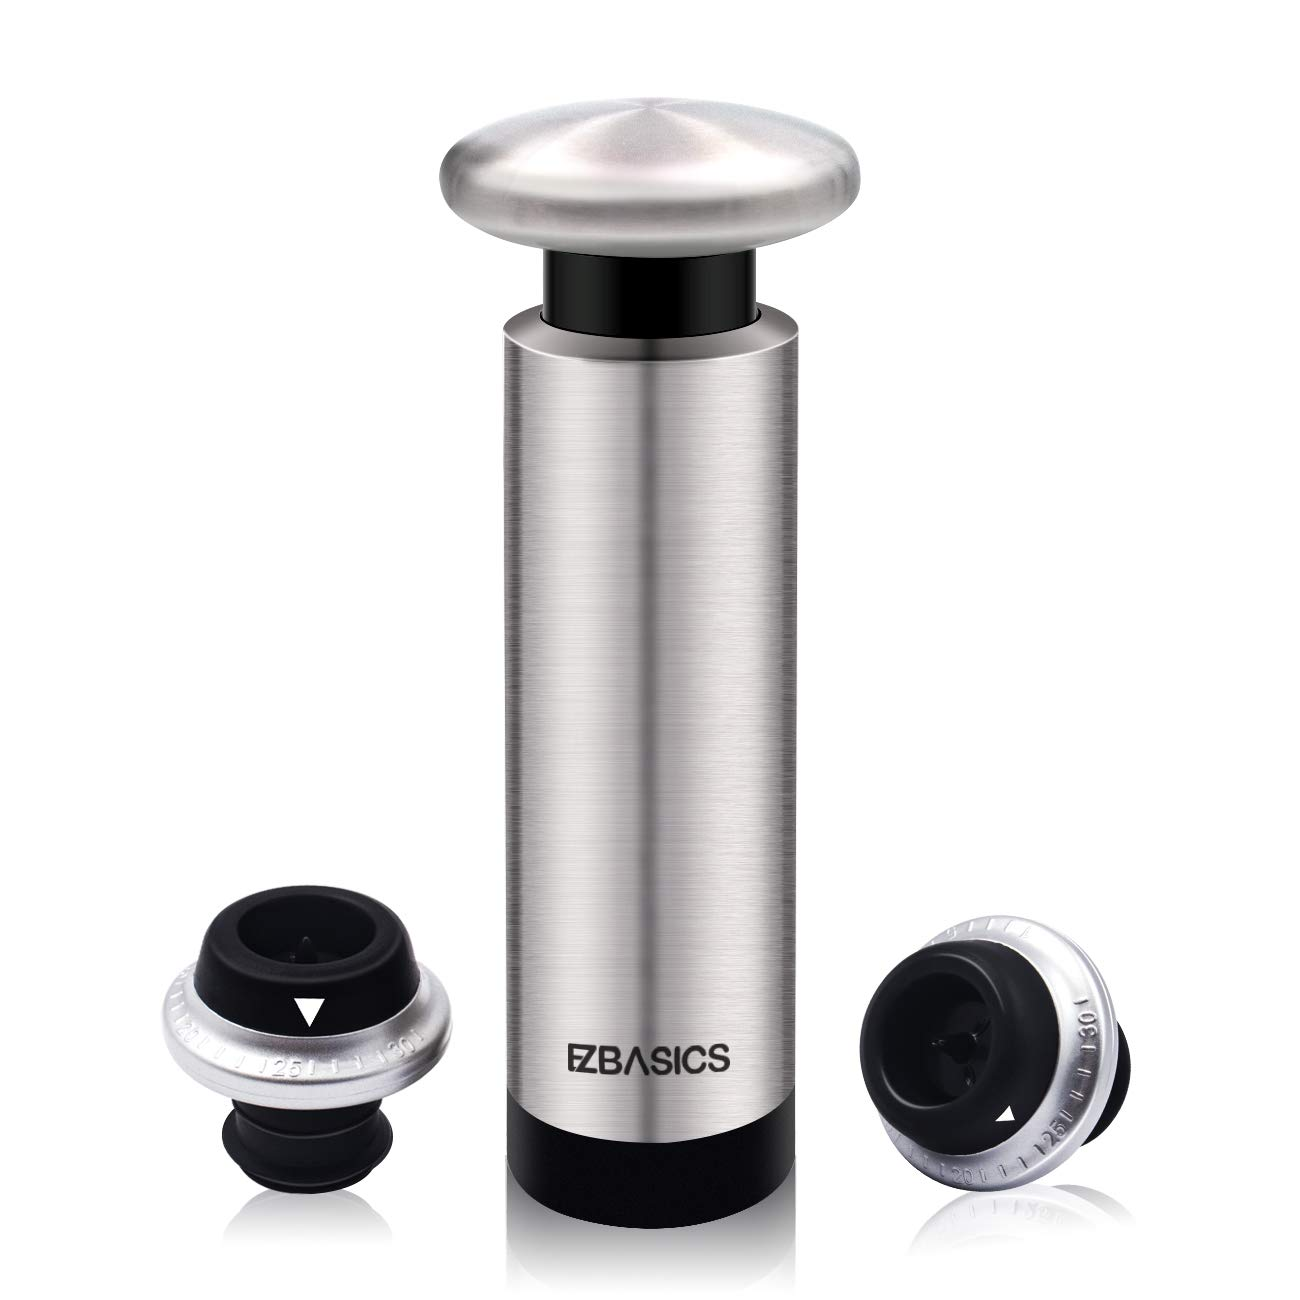 EZBASICS Wine Saver with 2 Wine Stoppers - Stainless Steel Wine Vacuum Pump with 2 Rubber Wine Bottle Stoppers with Vacuum